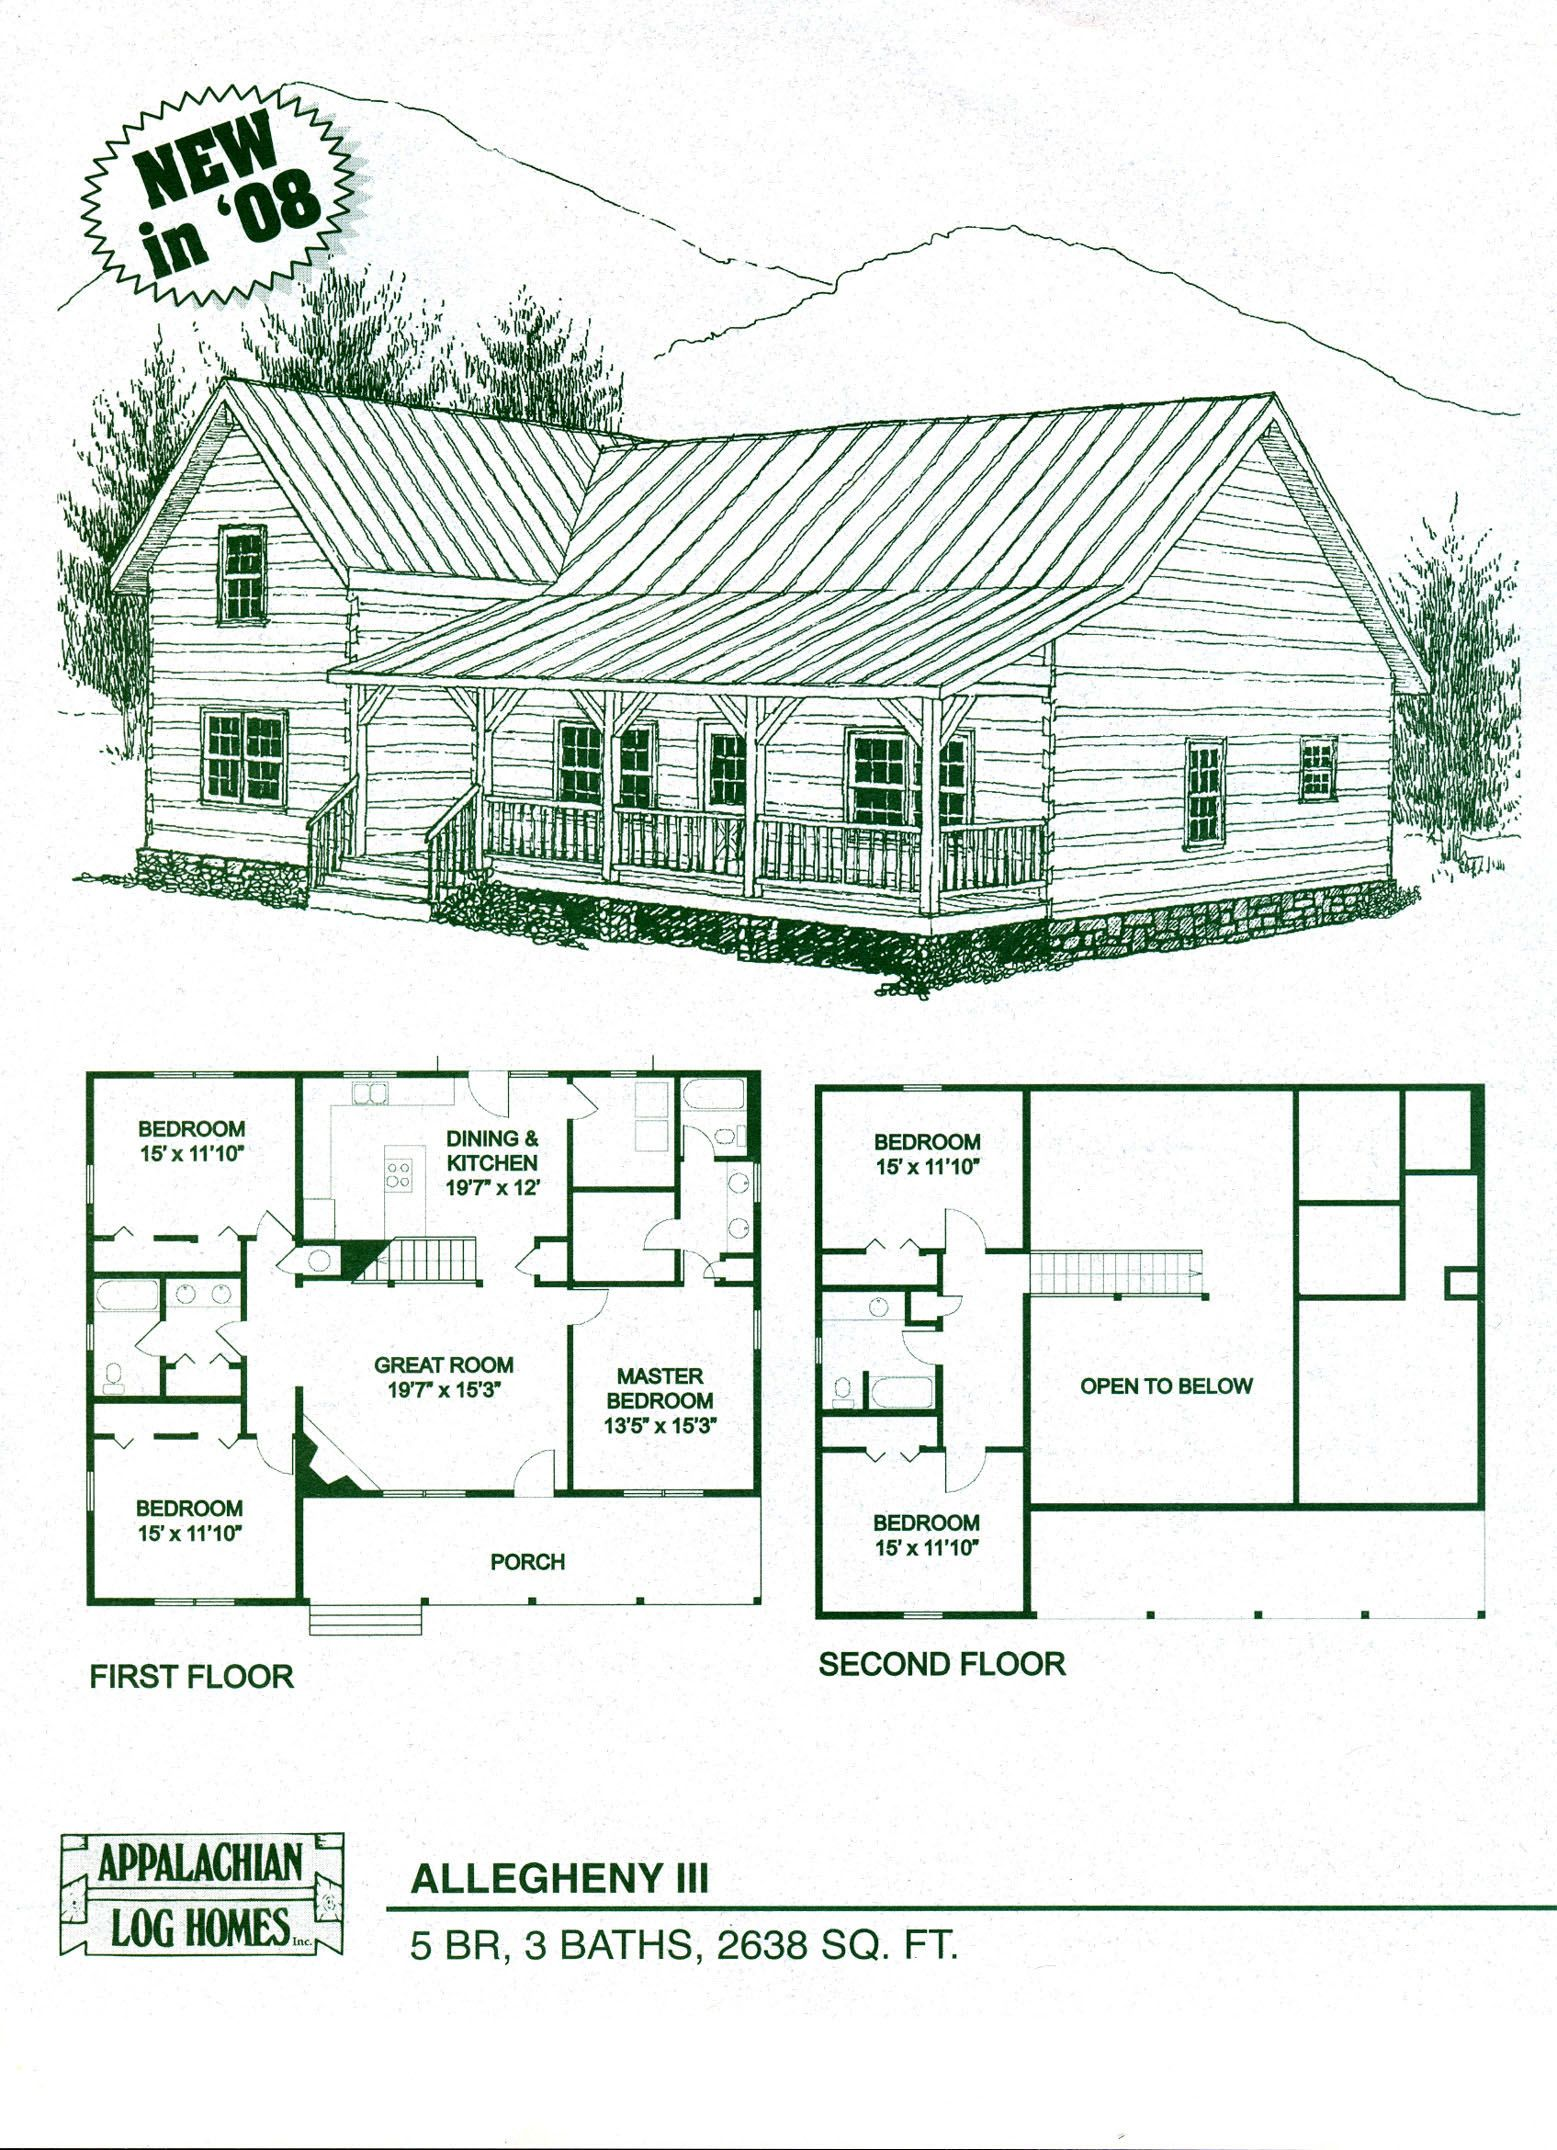 Log home floor plans log cabin kits appalachian log for Log home floor plans with garage and basement